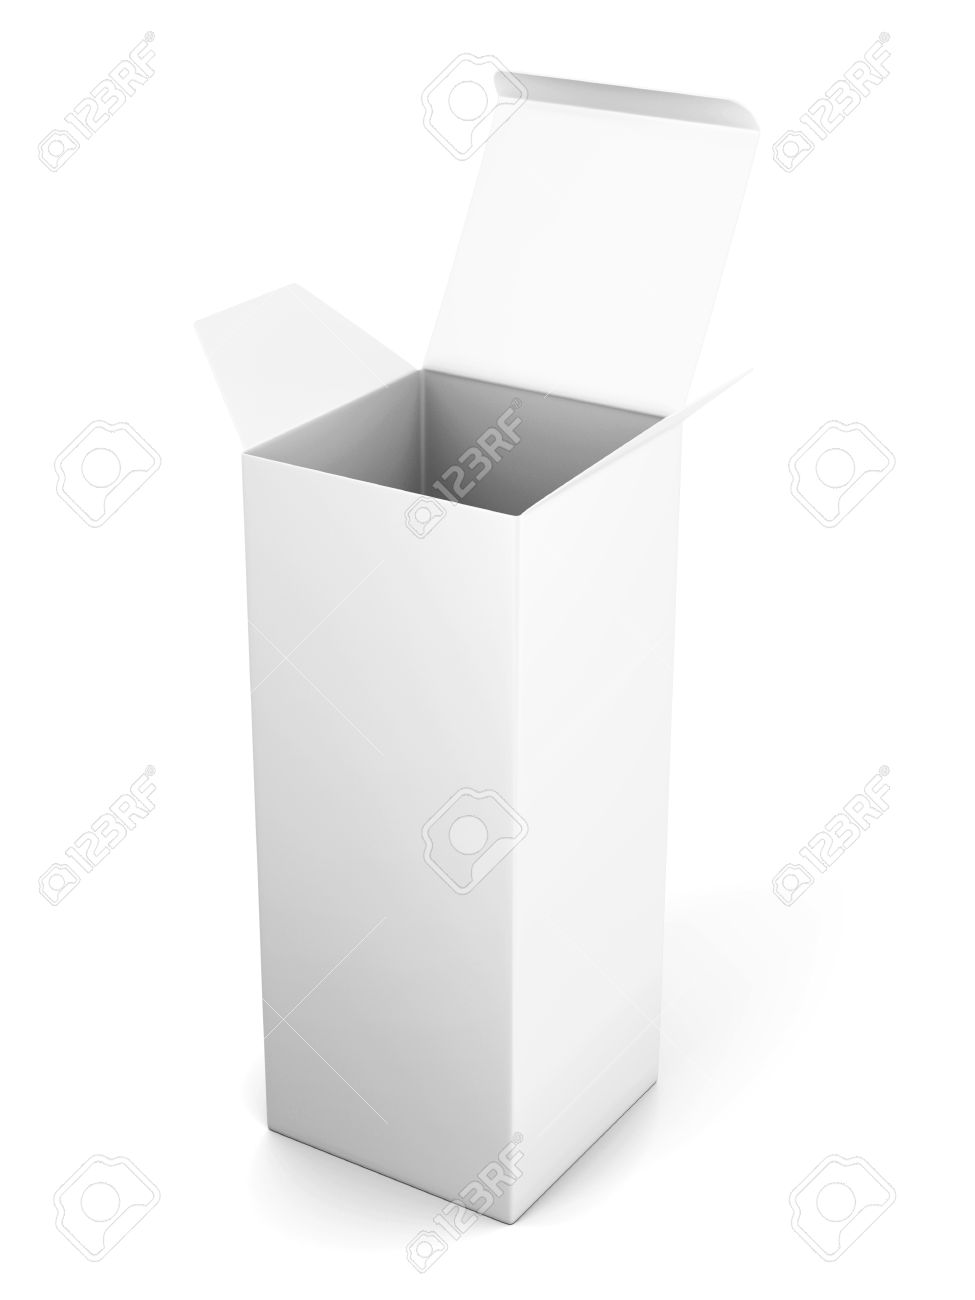 Blank Open Vertical Cardboard Box Template Standing On White.. Stock ...